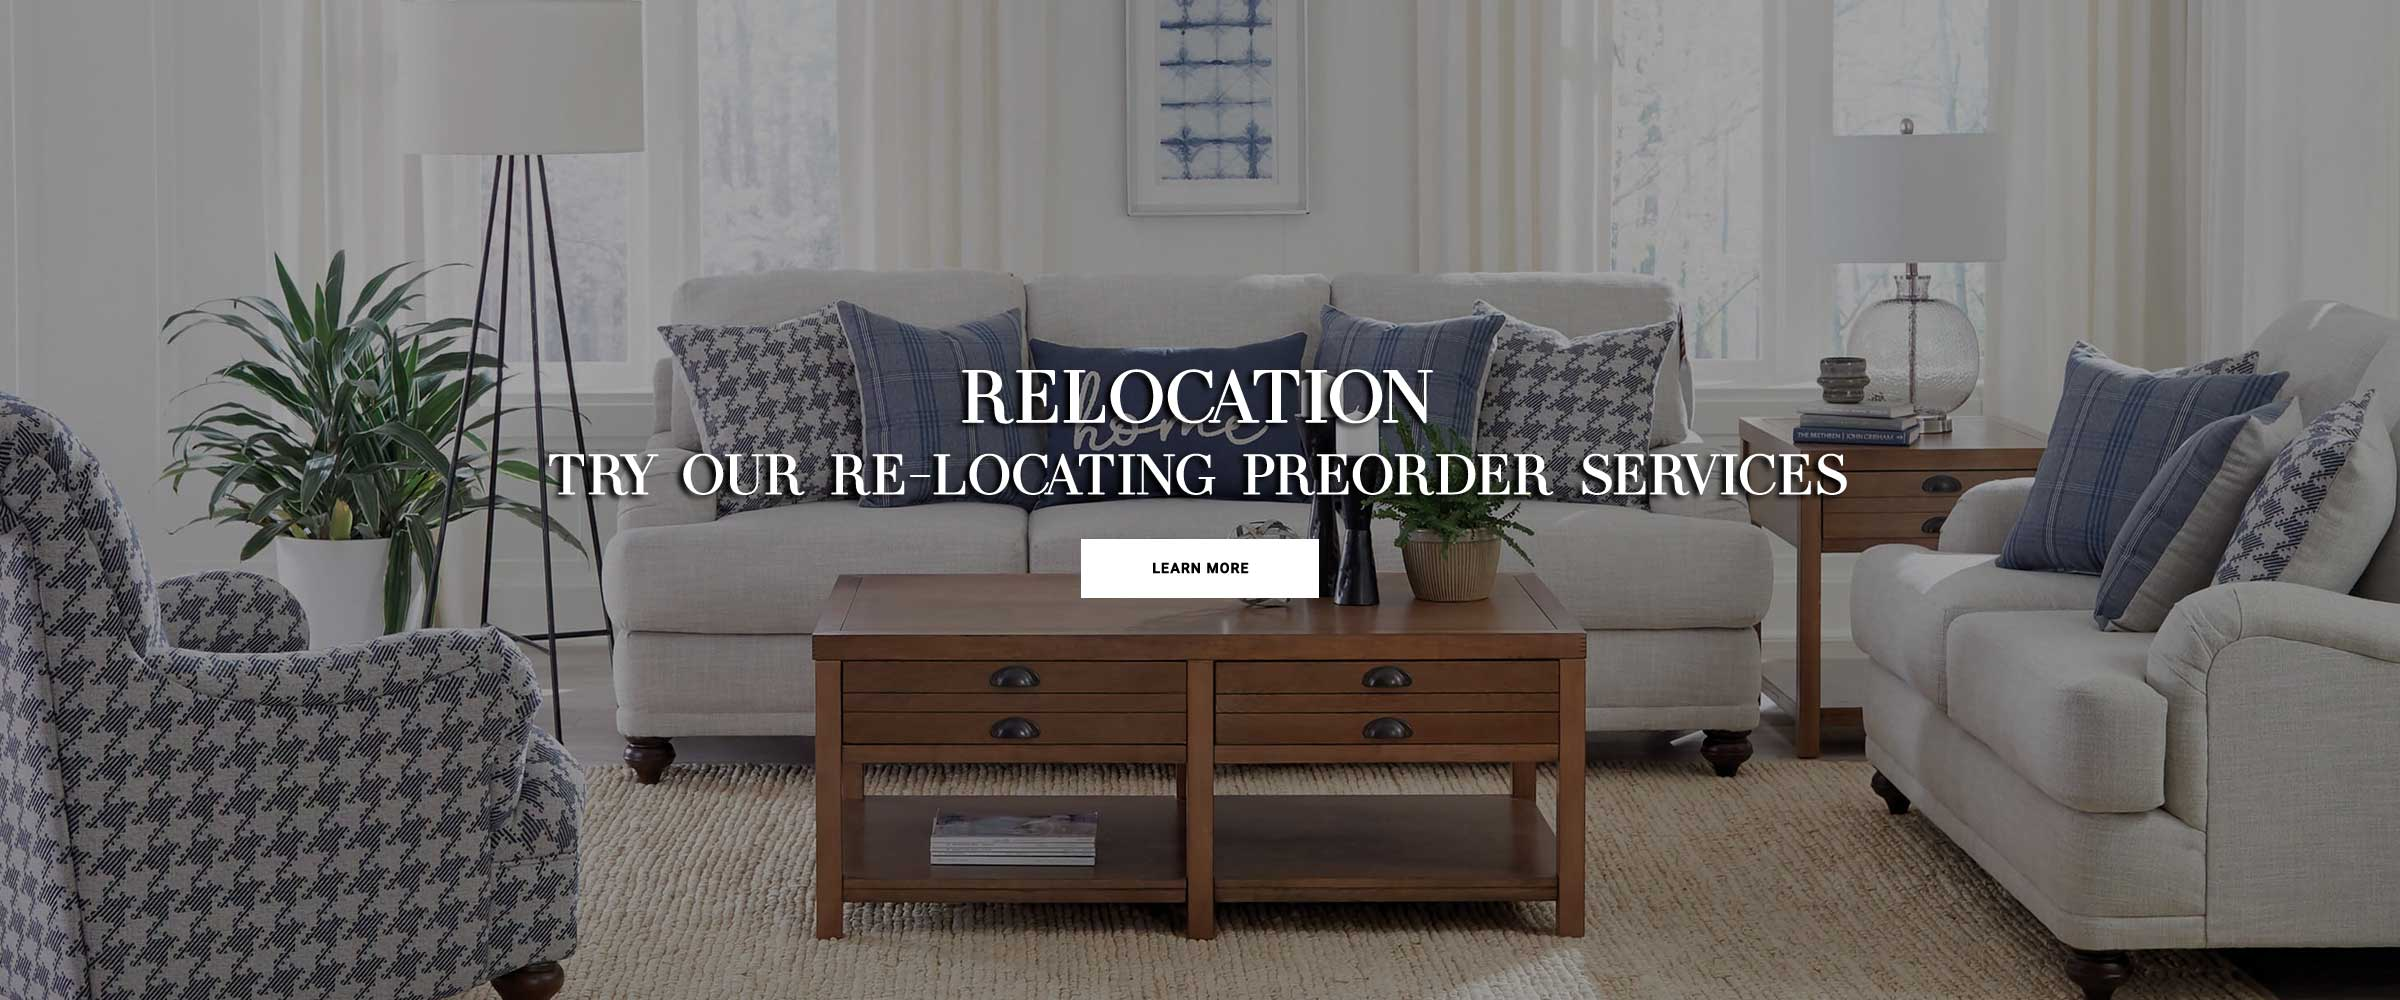 Relocating Preorder Services